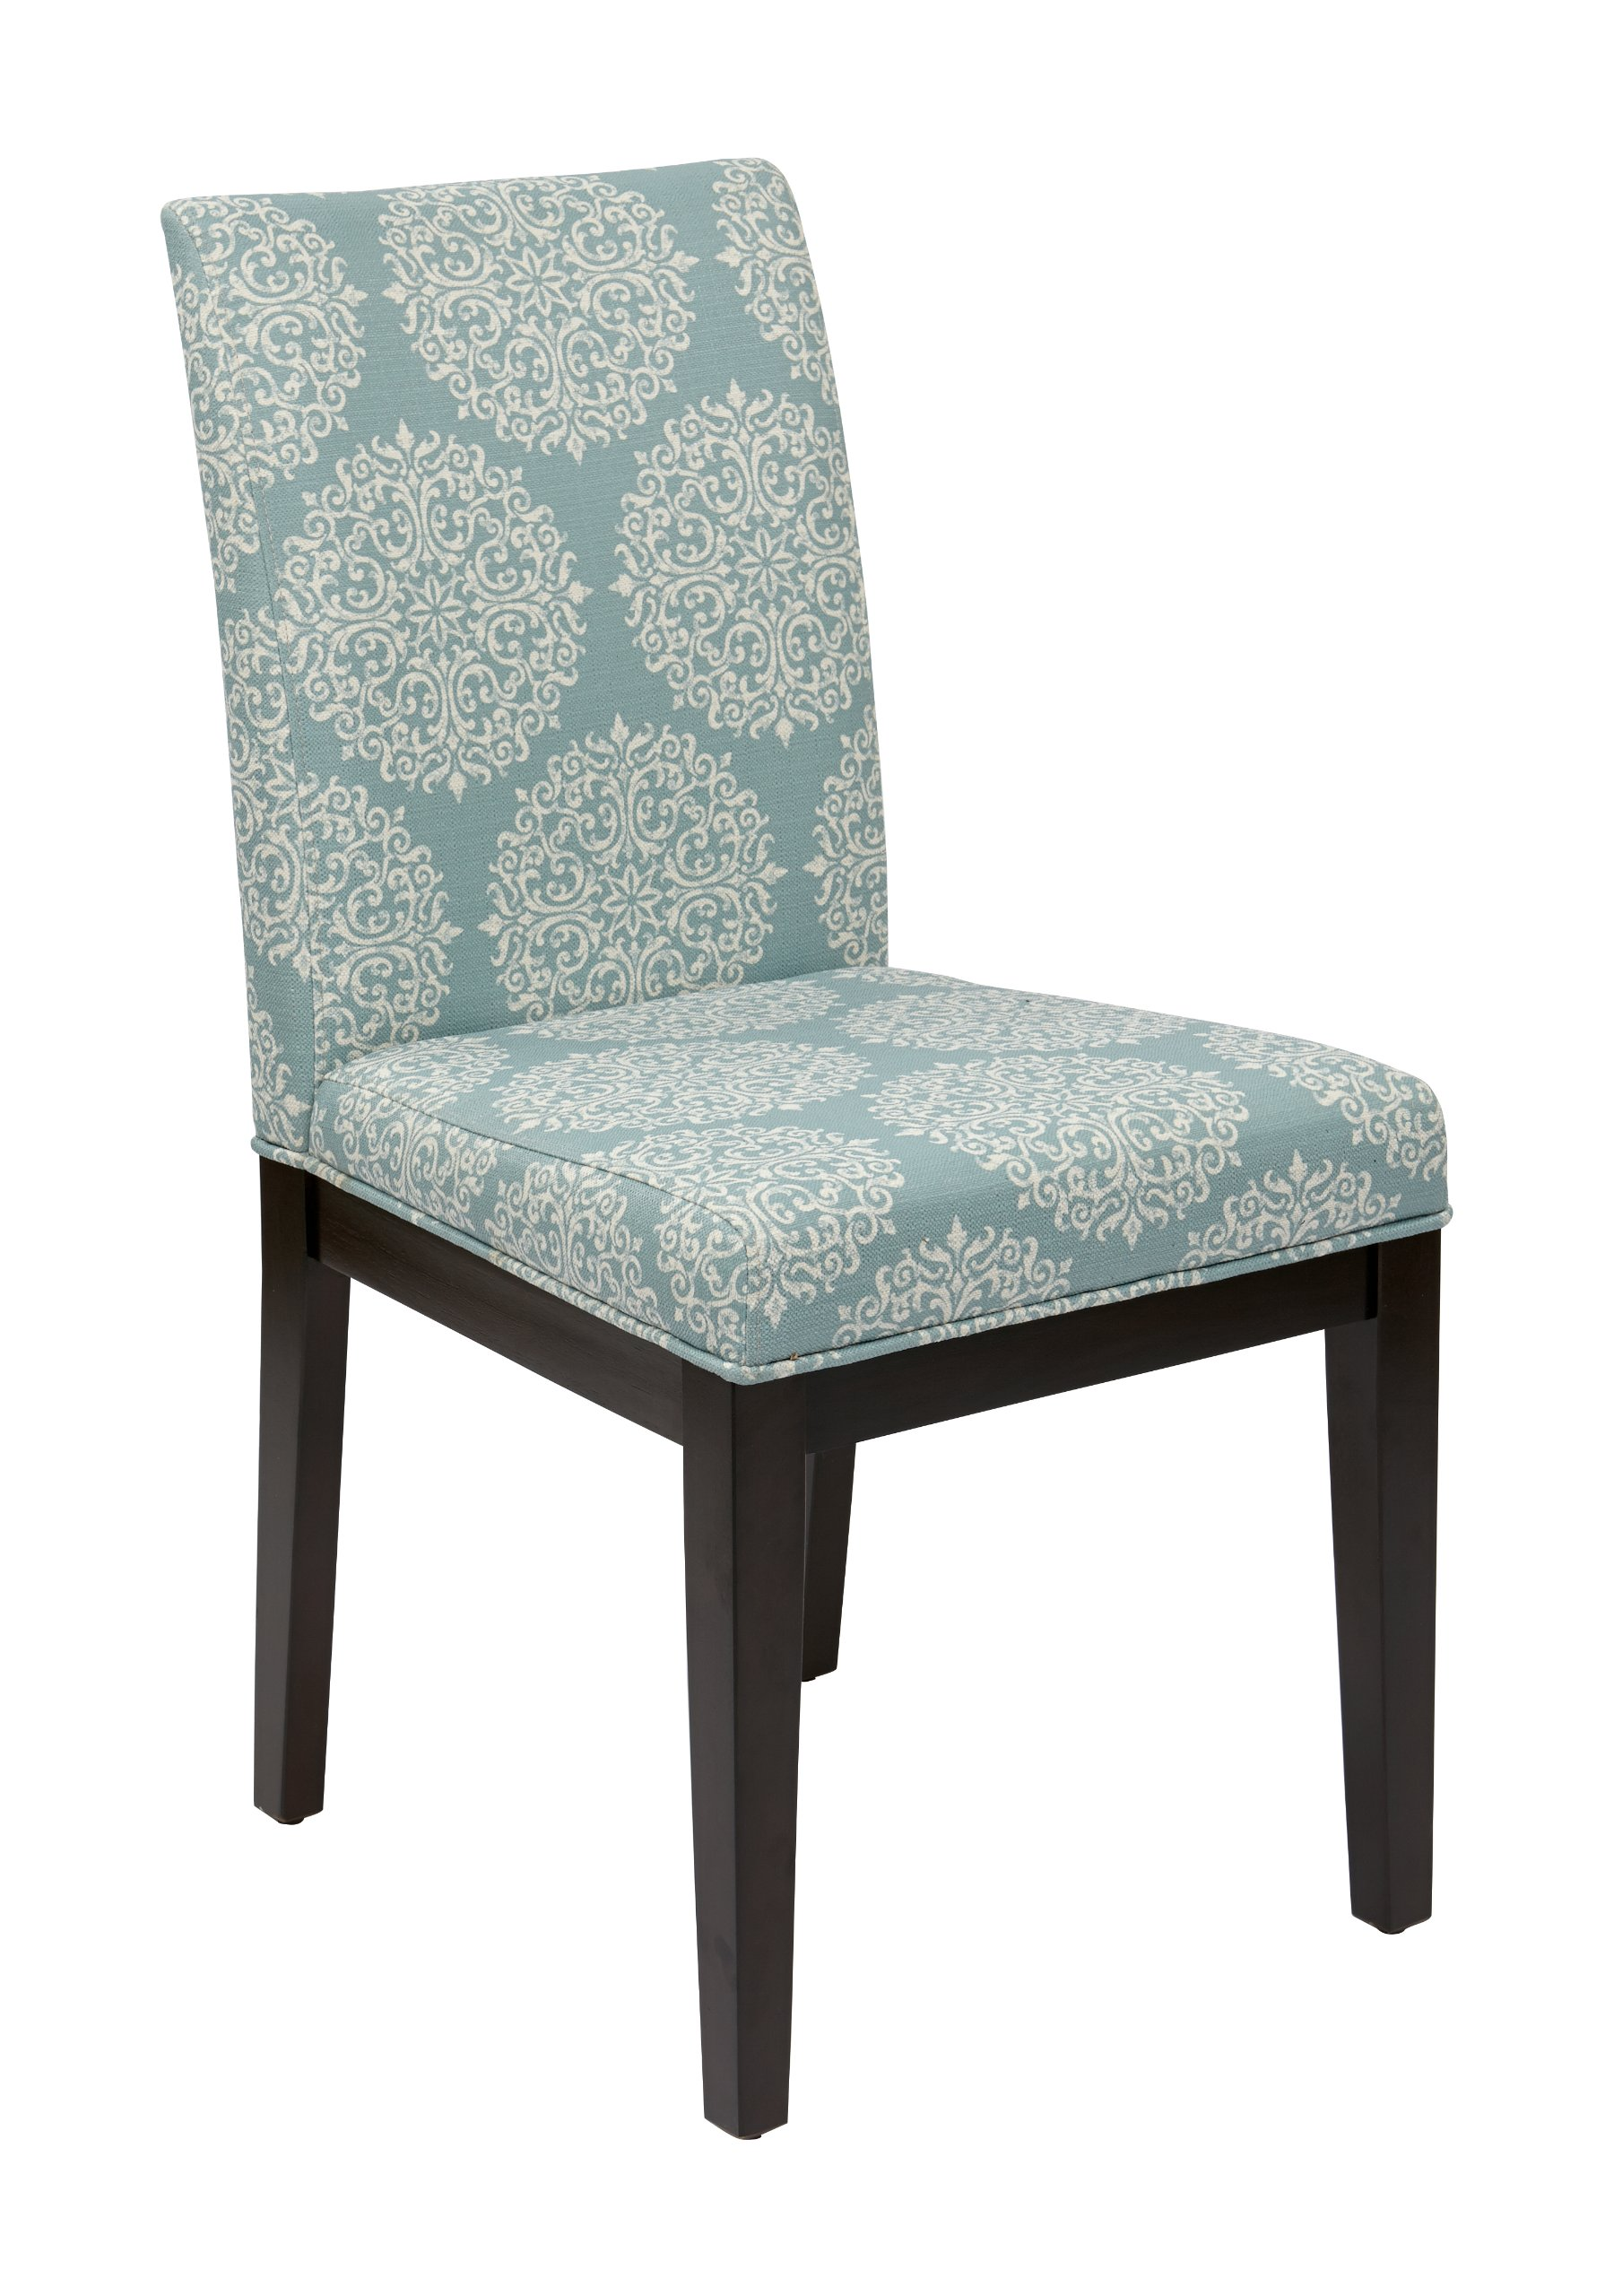 AVE SIX Dakota Upholstered Parsons Chair with Espresso Finish Wood Legs, Gabrielle Sky